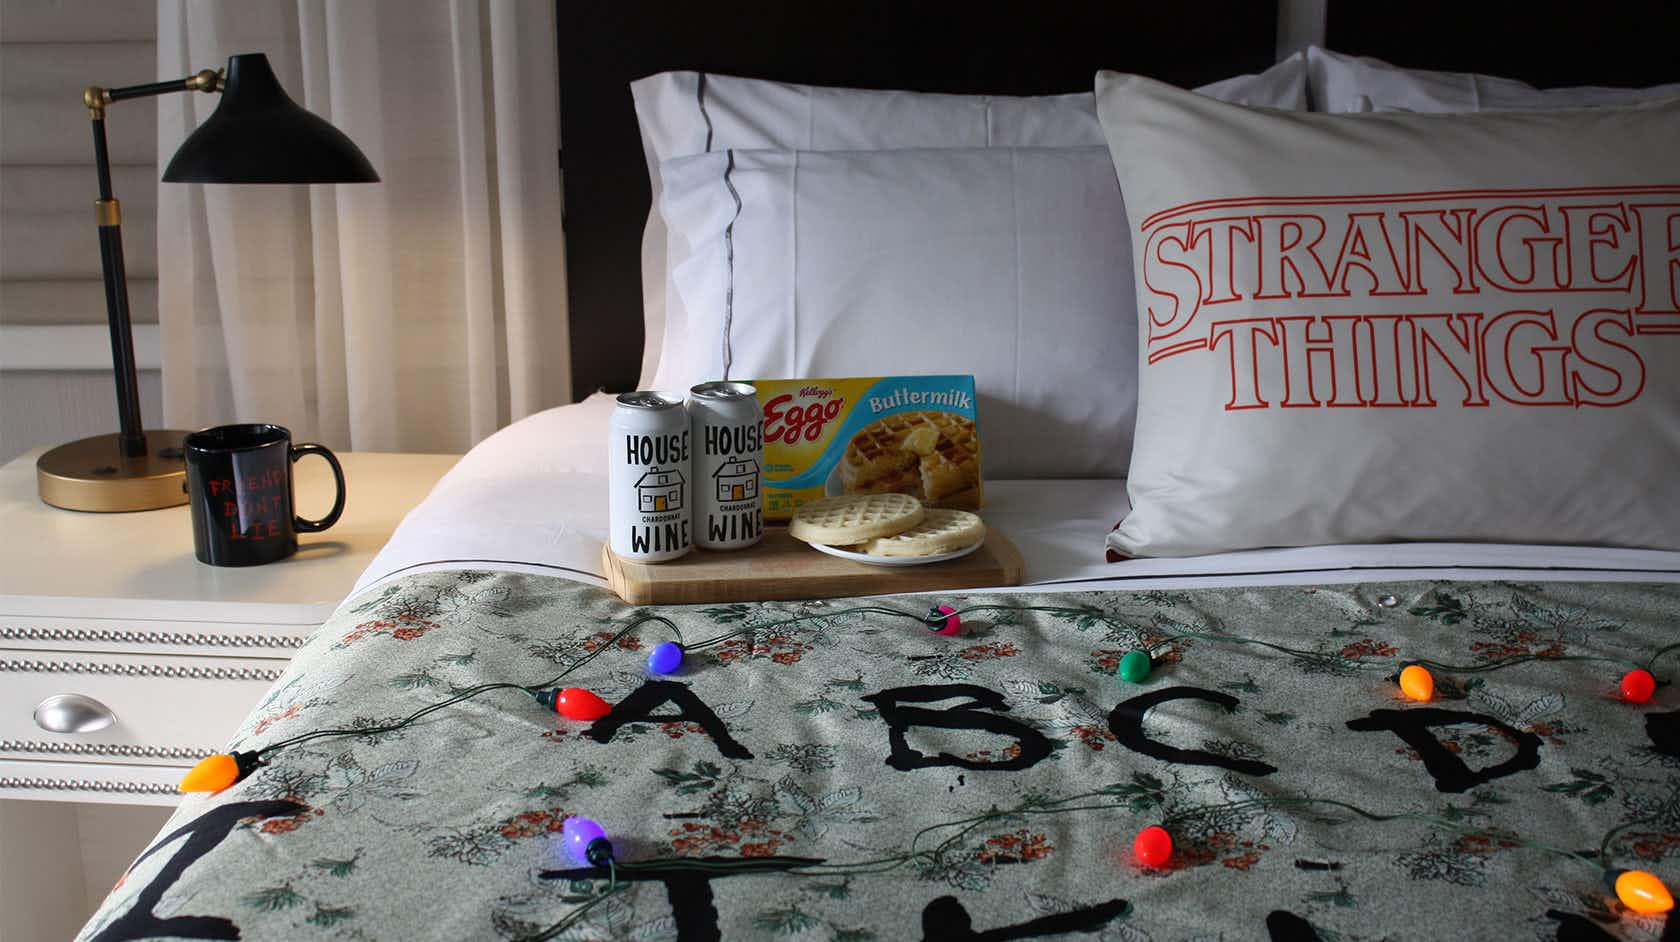 You can stay in a Stranger Things-themed hotel room in New York